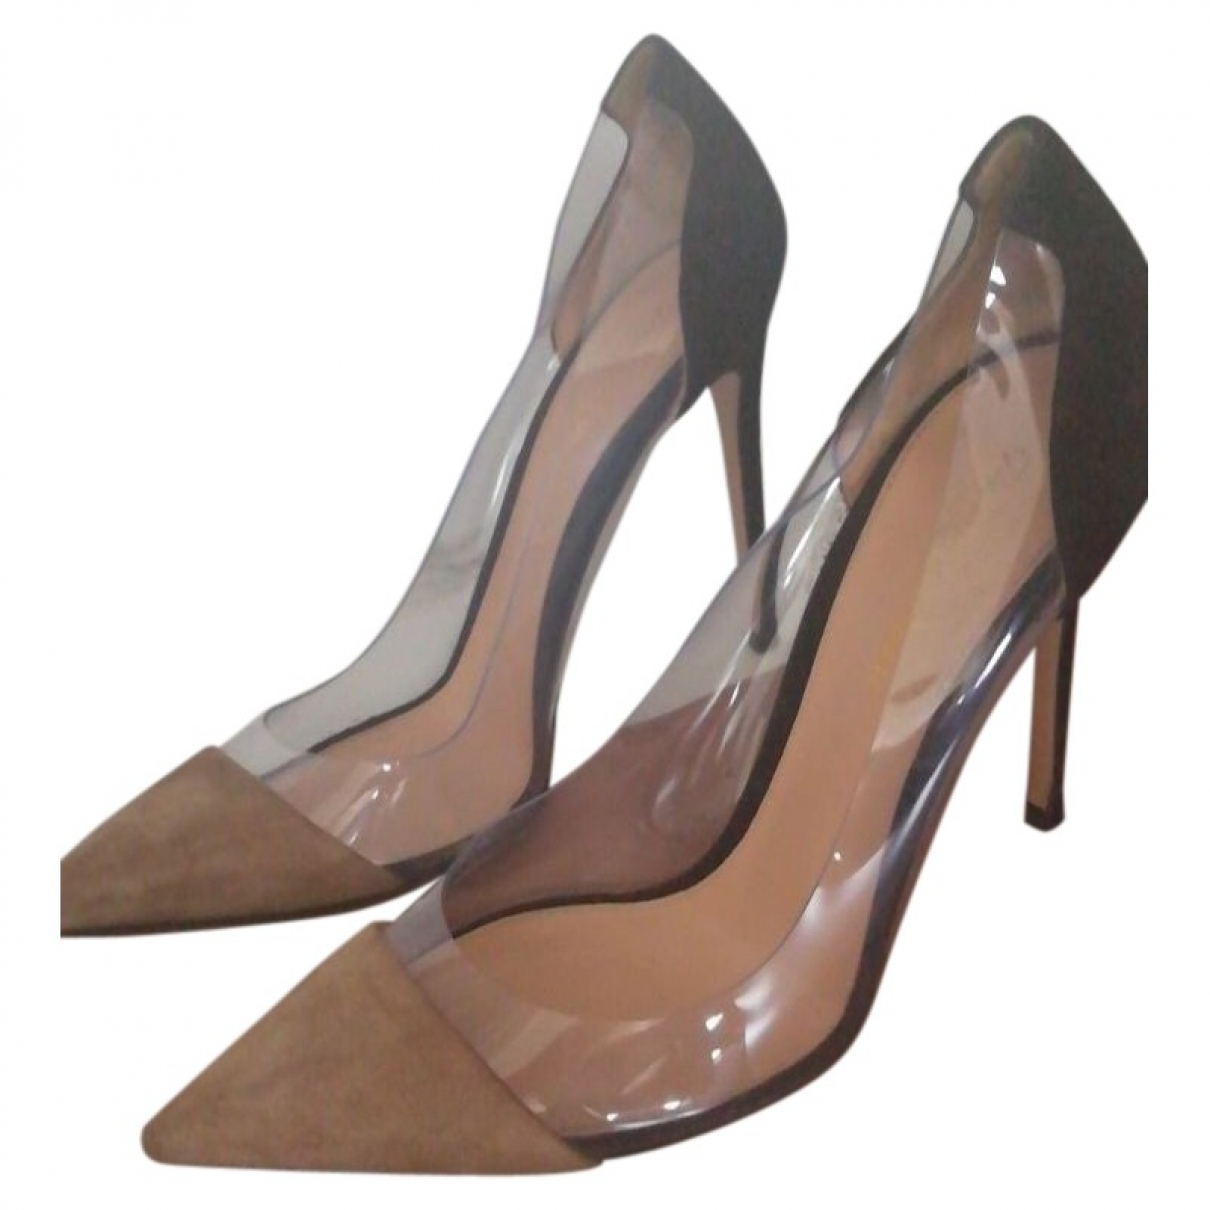 Gianvito Rossi Plexi Camel Heels for Women 39.5 EU